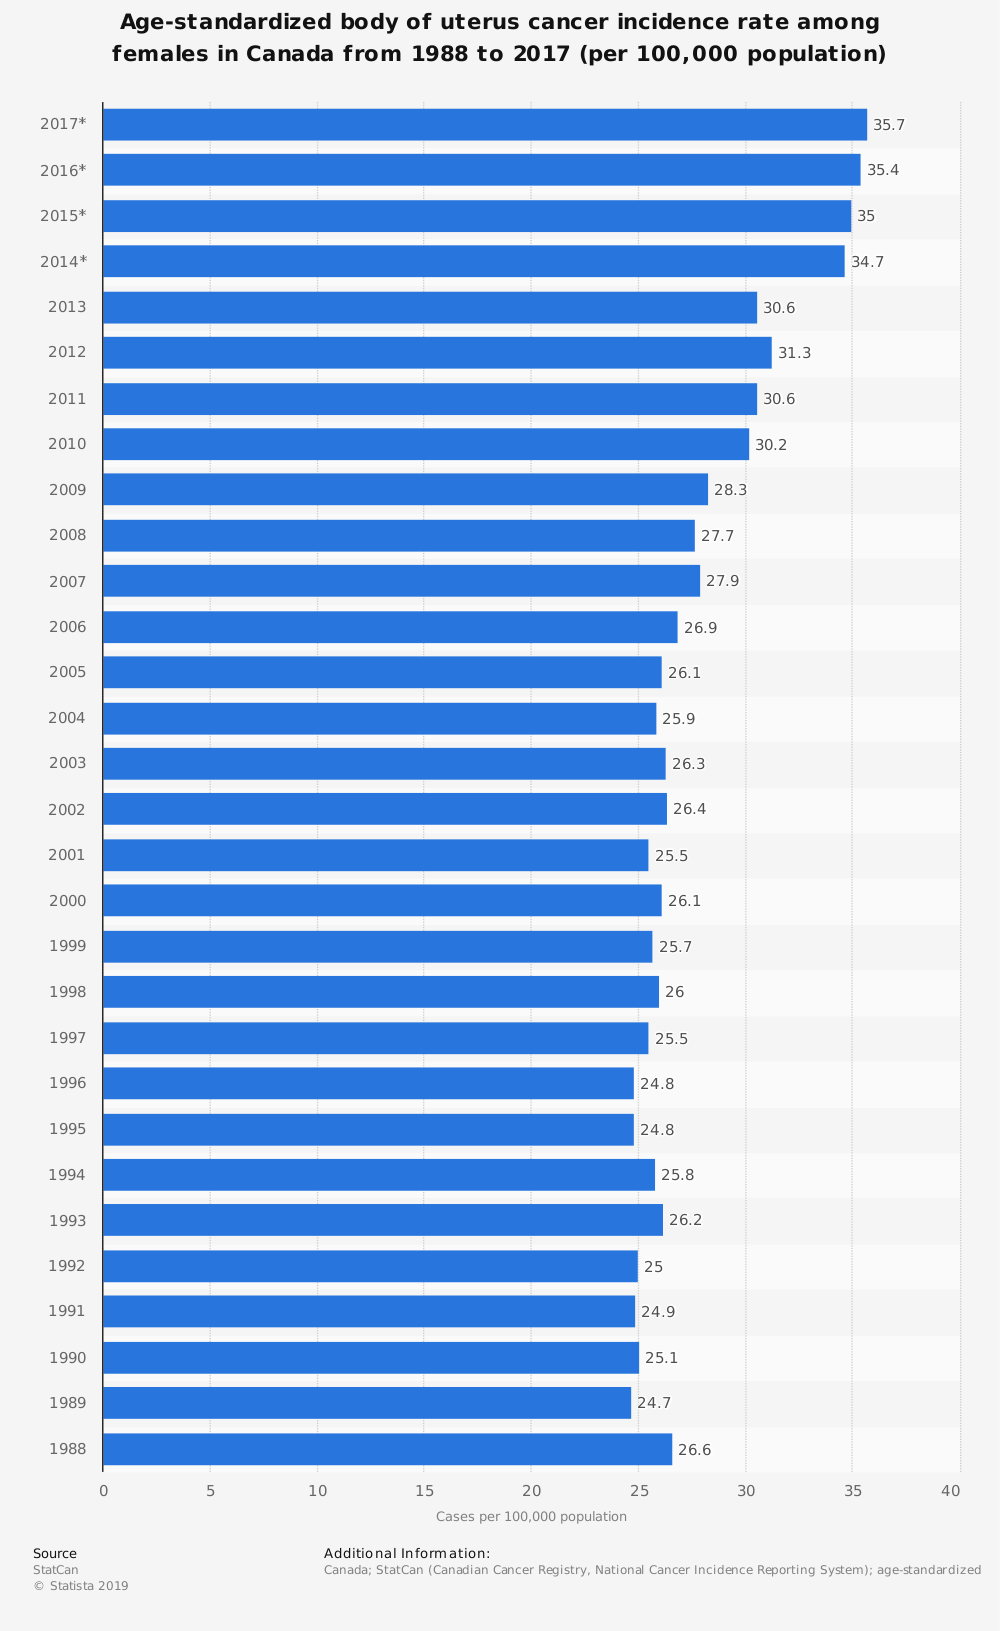 Statistic: Age-standardized body of uterus cancer incidence rate among females in Canada from 1988 to 2017 (per 100,000 population) | Statista